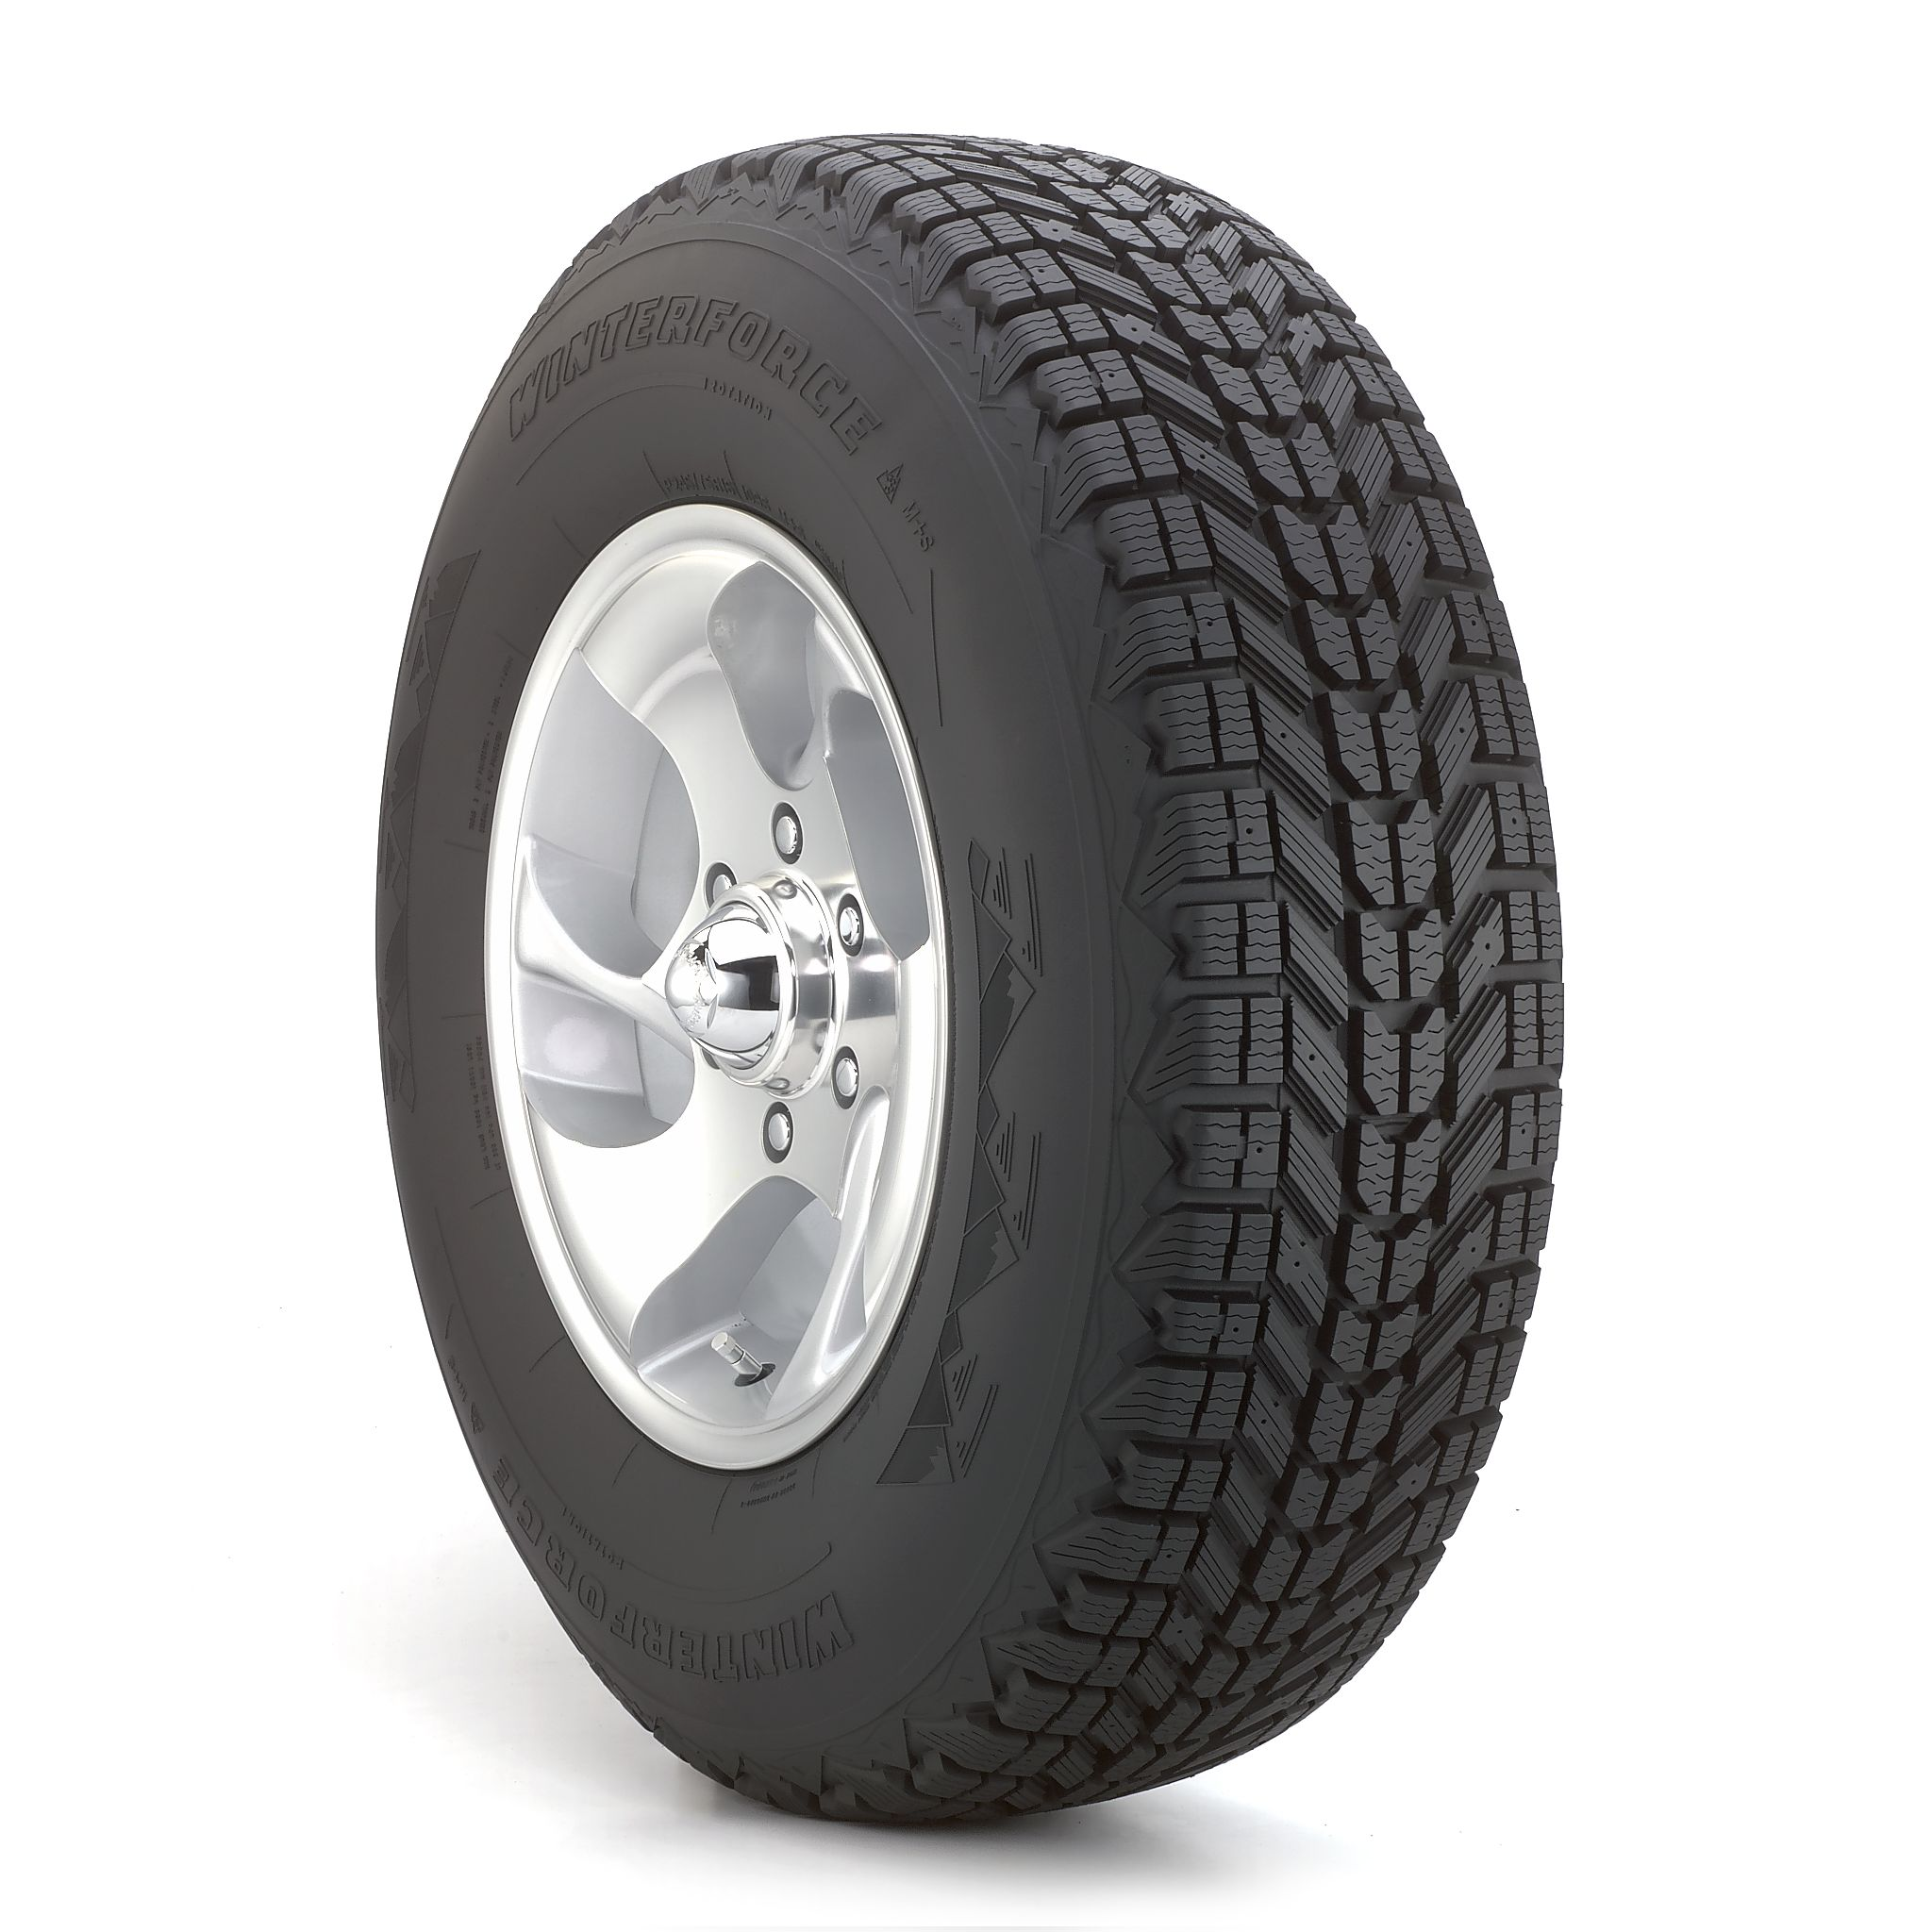 Firestone Winterforce - P265/70R17 S BW - Winter Tire 265-70-17